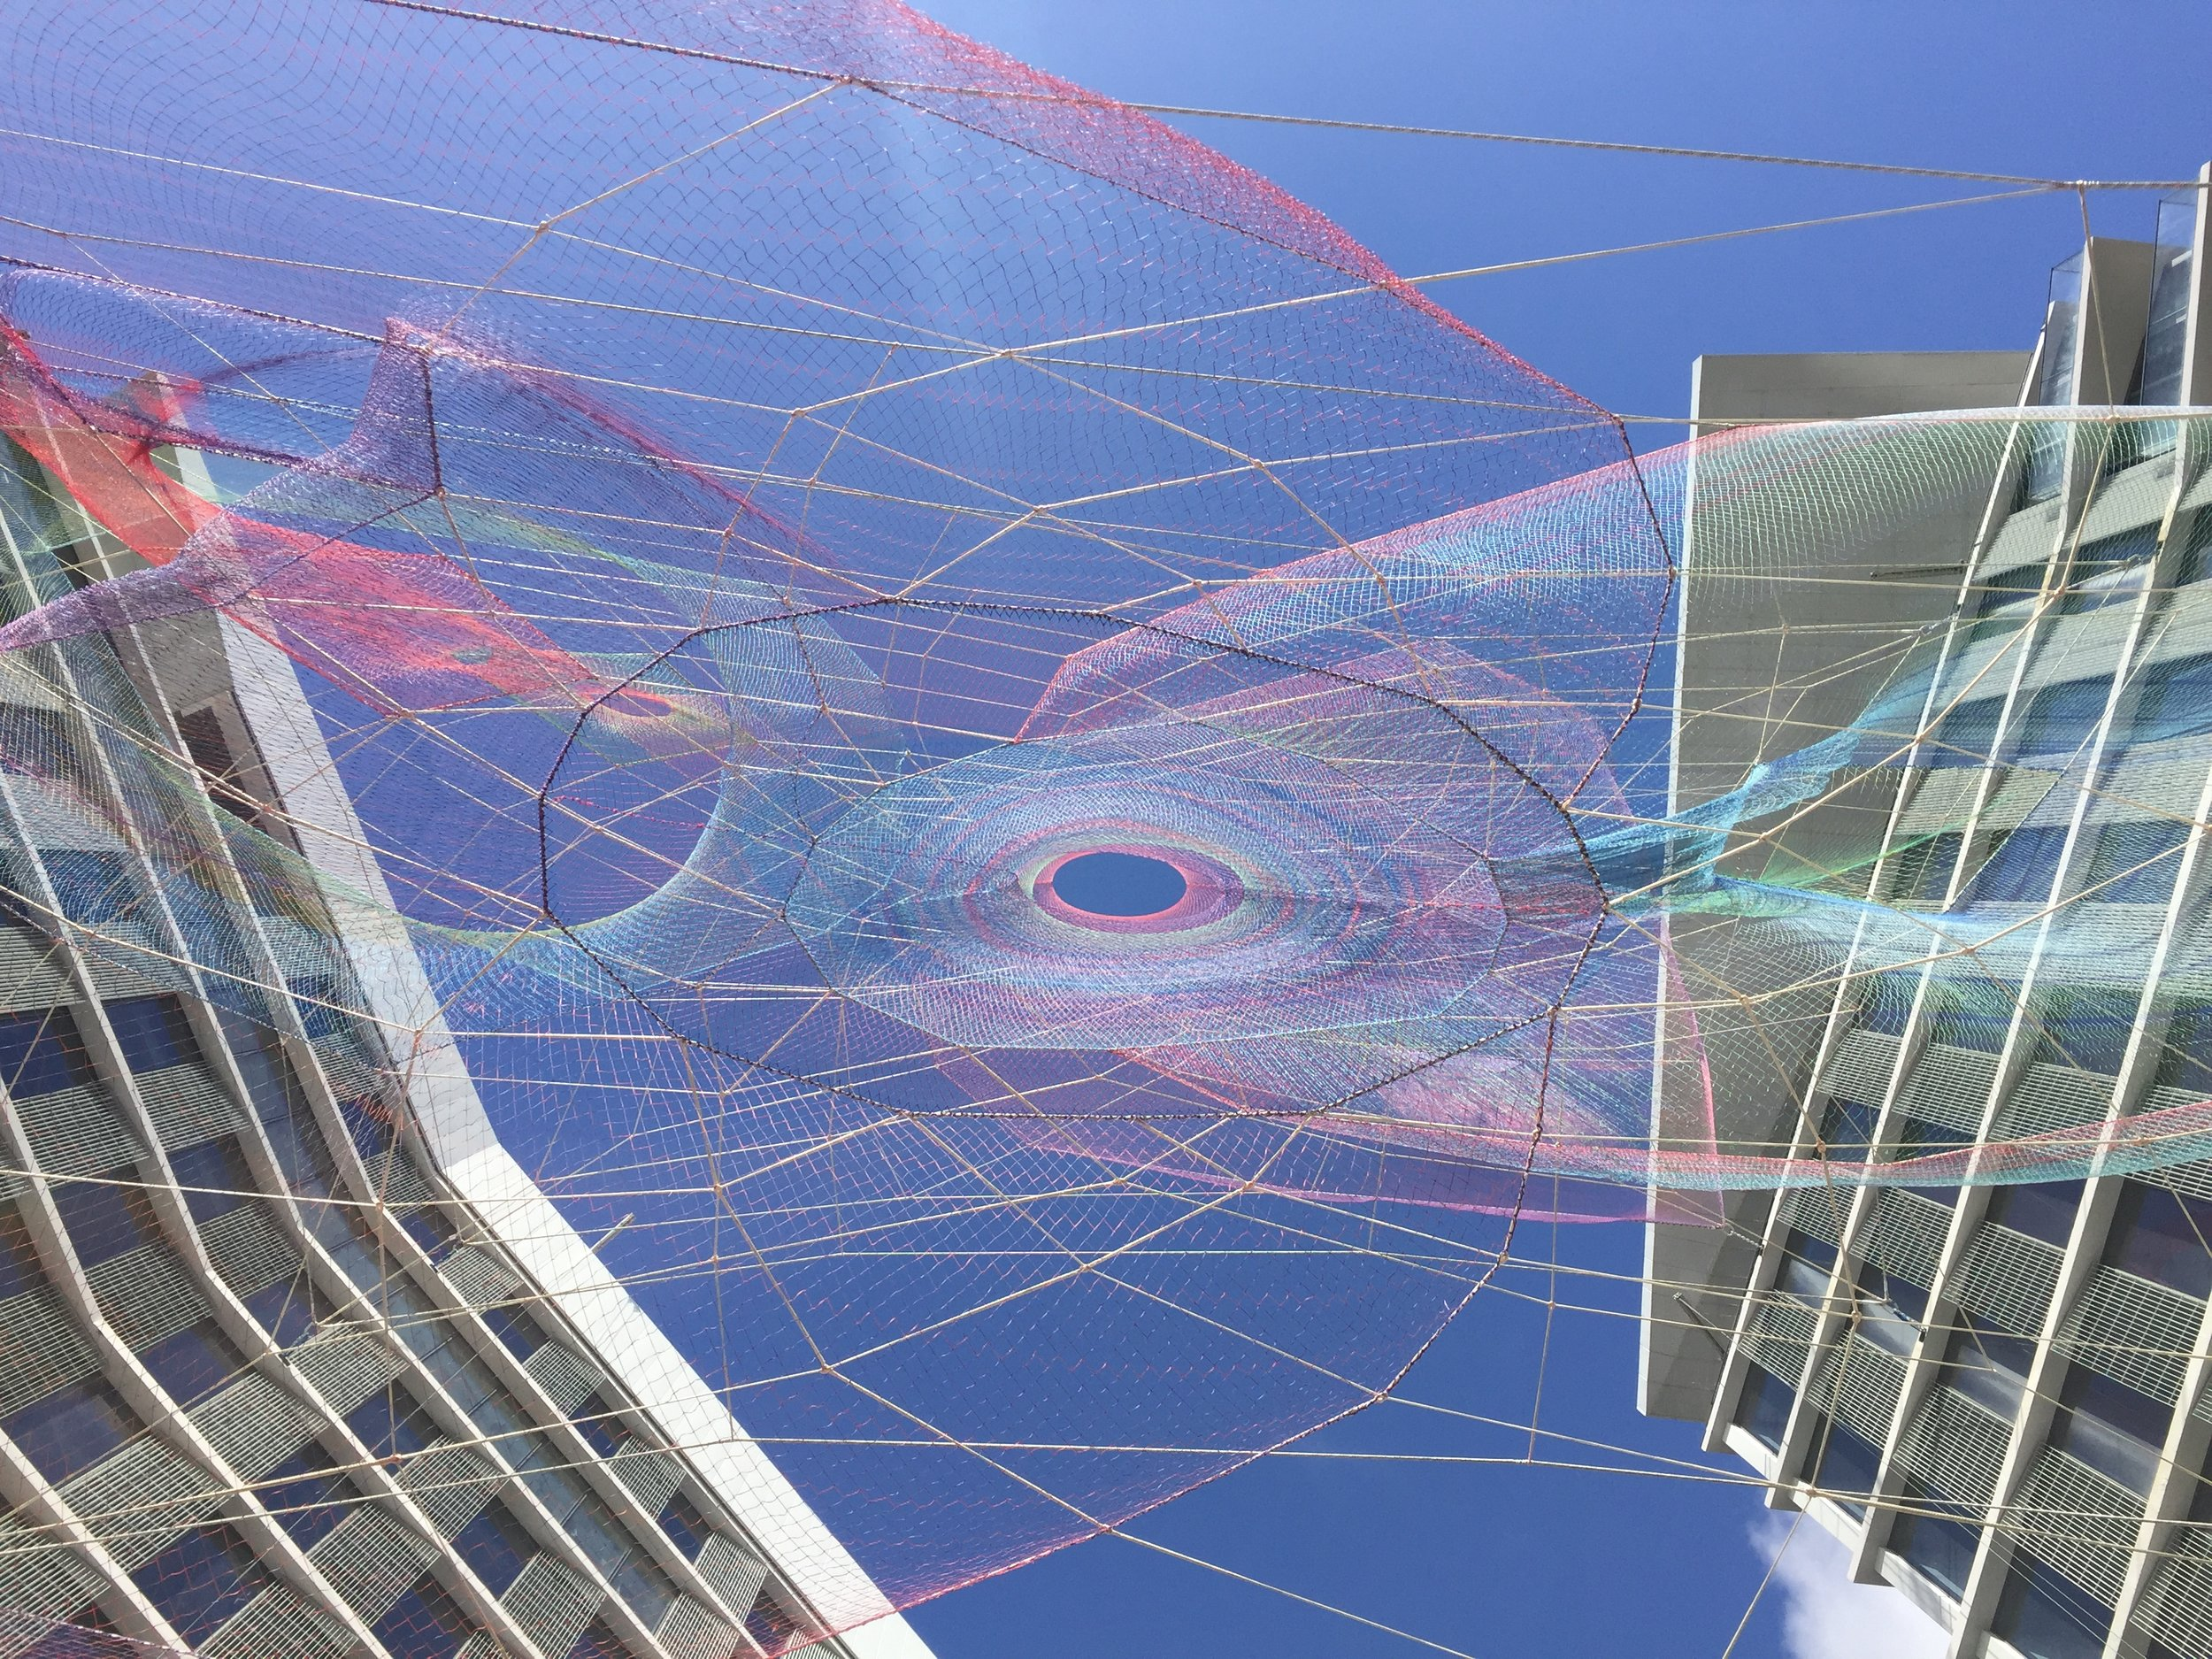 This daytime image is taken from the motor court entrance to the hotel approximately 120 feet below the top of the sculpture. From this perspective the sculpture is radically different than seen laterally at street level. Here viewers have a worm's eye view up and through the complex structure and can understand how the composition spins out from several organizing cores. An opposing perspective looking down is possible to enjoy from the 10th floor lounge.  Photo courtesy of: Nicole Wang/SOM Engineering, Courtesy Echelman Studio